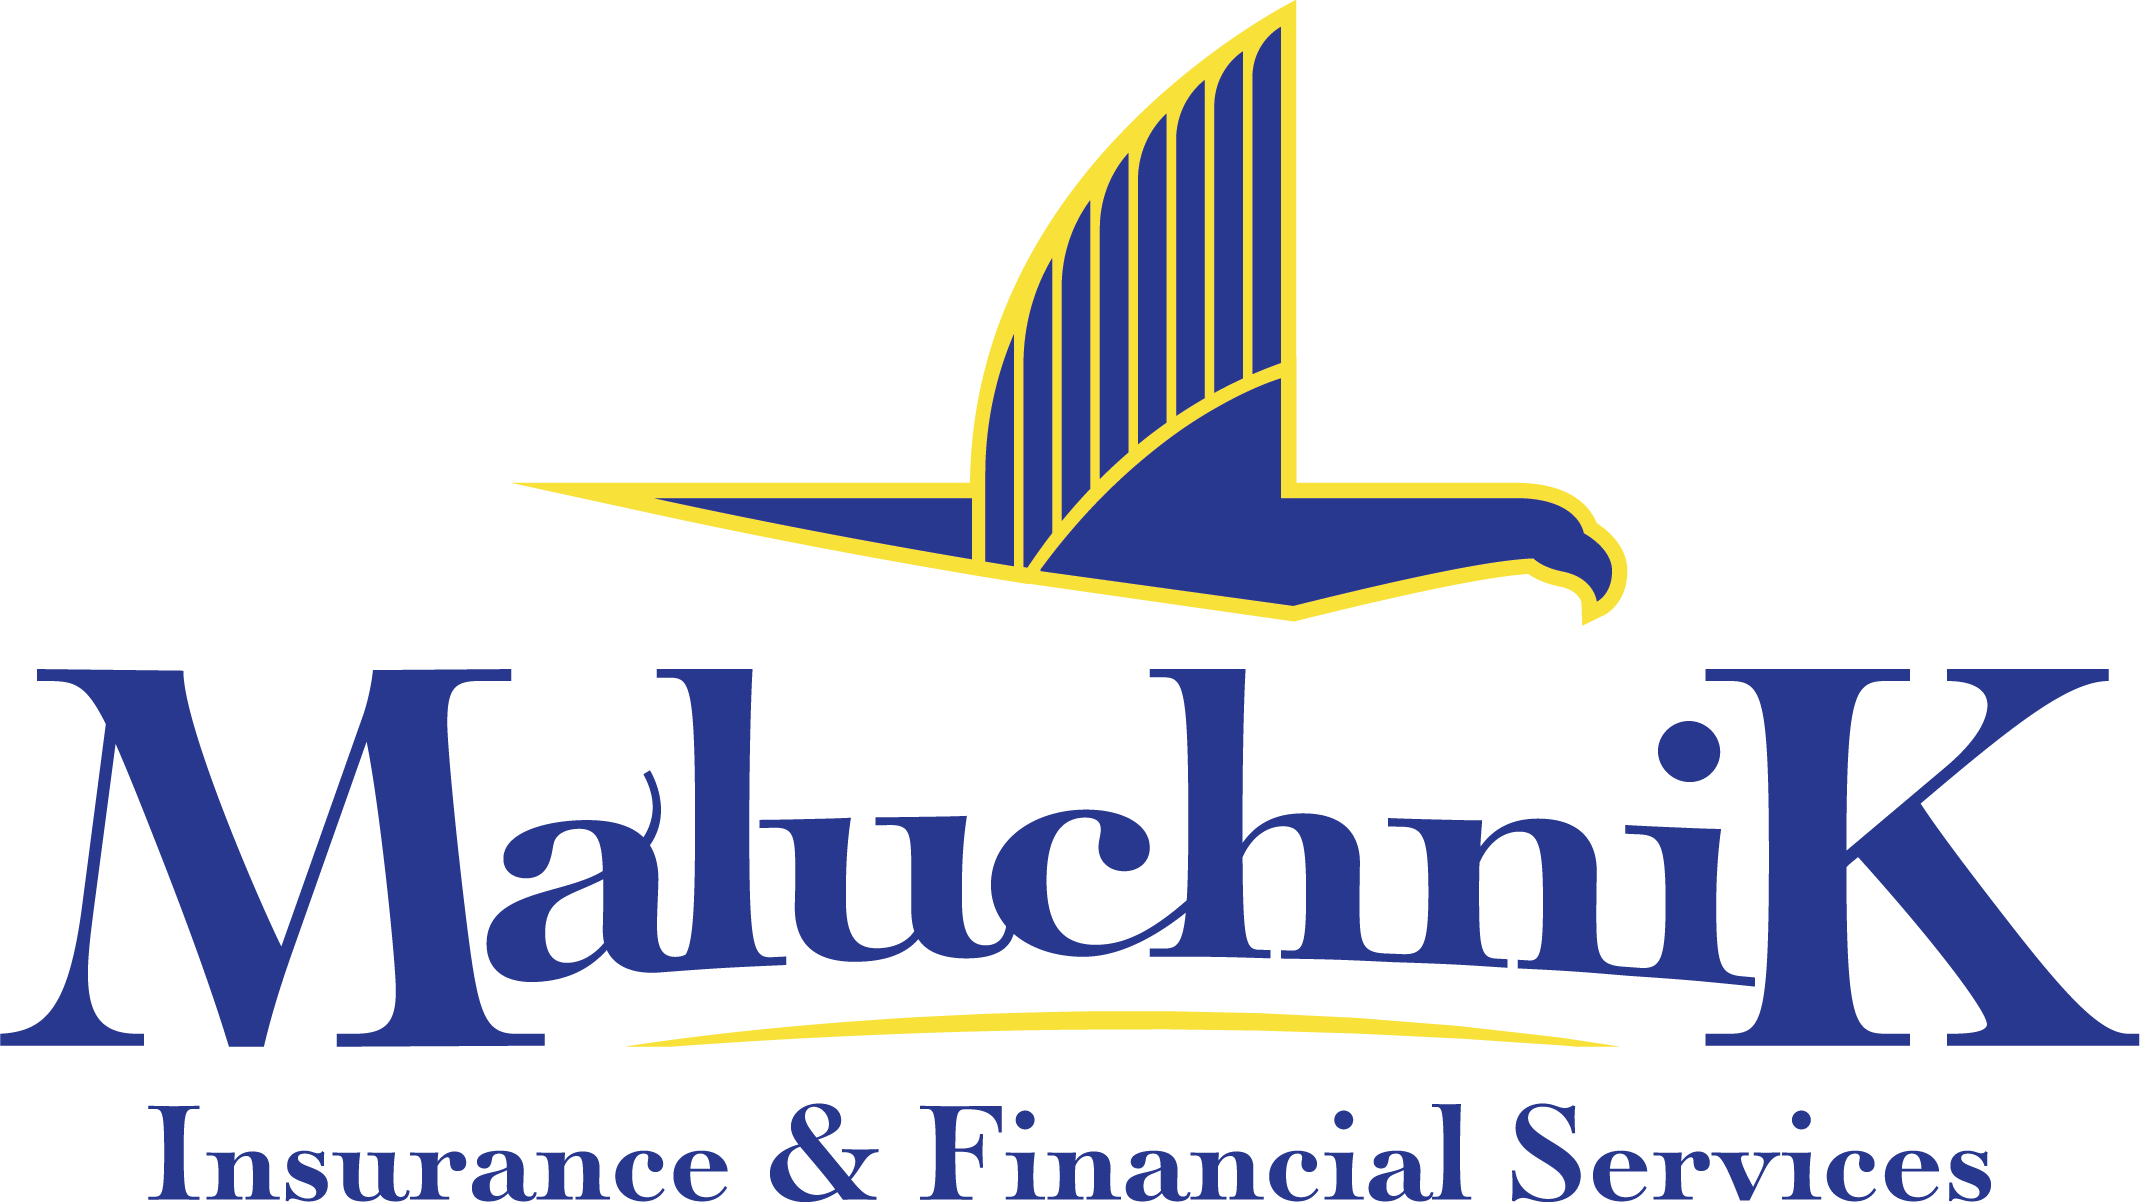 Maluchnik Insurance Financial Services Homeowners Auto Life Insurance Johnstown Pa